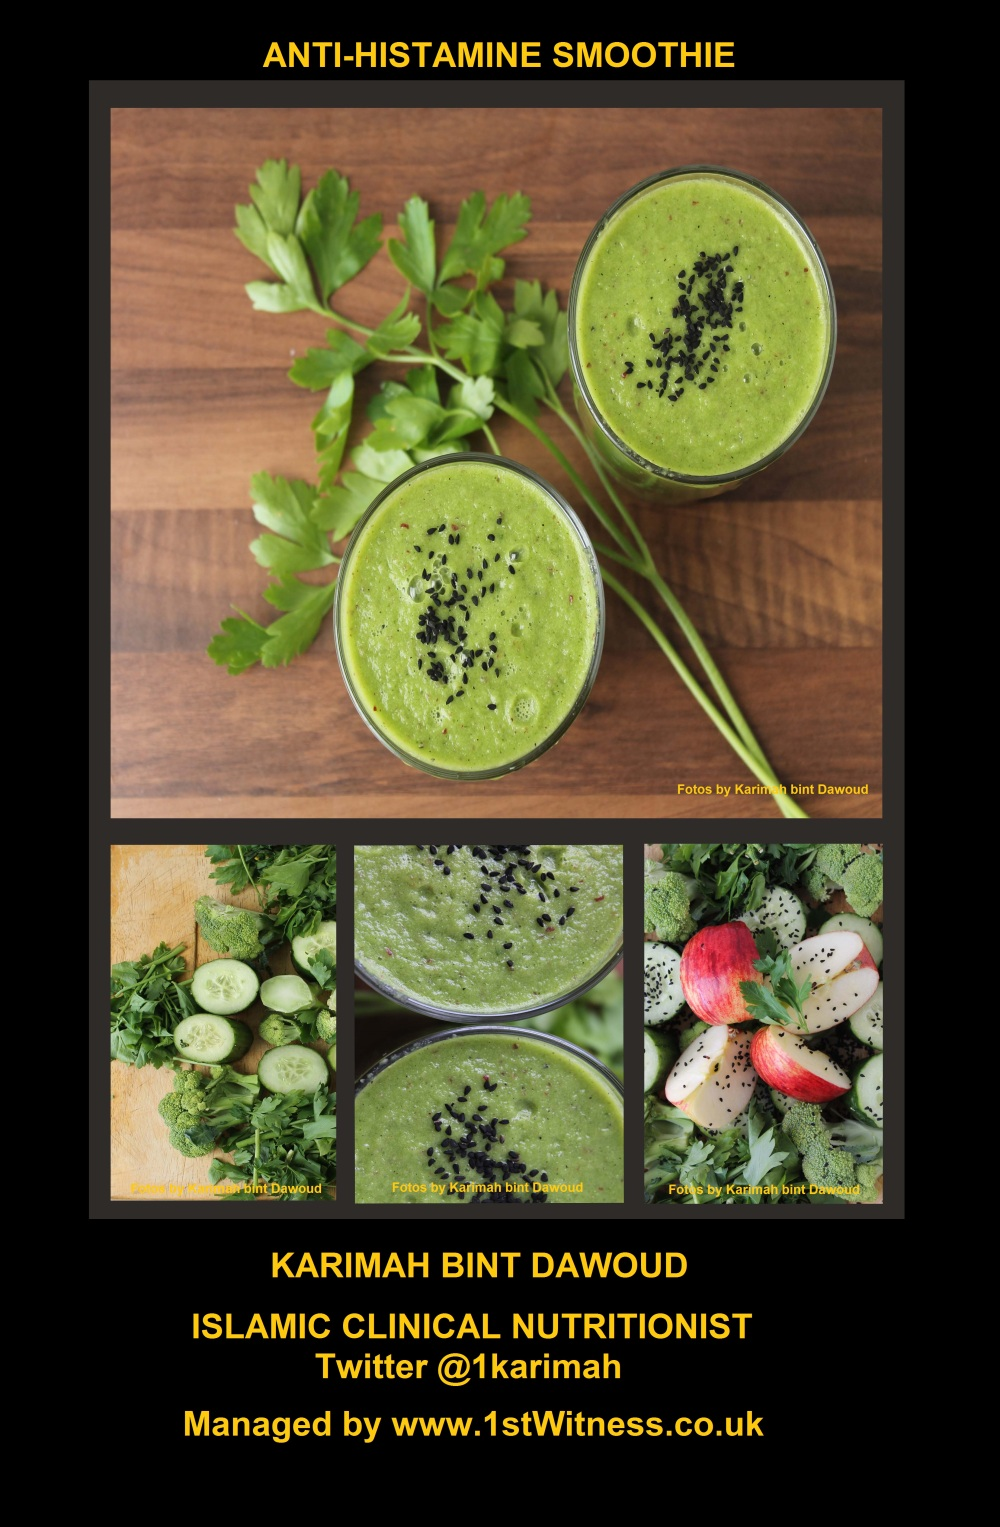 Anti-Histamine Smoothie -The Green One